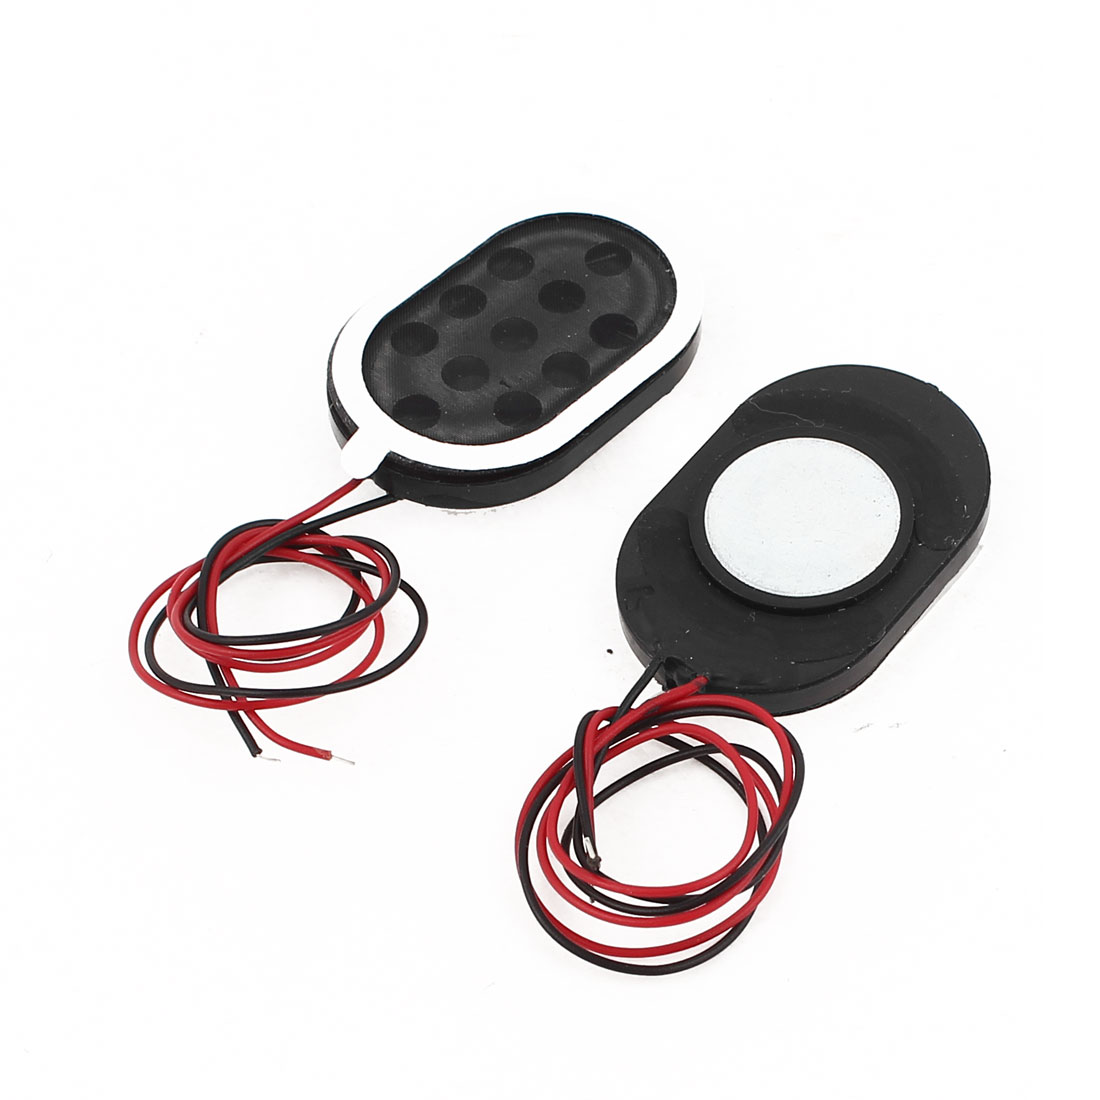 2 Pcs Wired Internal Magnetic Speakers 30x20mm 8Ohm 1W for Yuandao N90 Tablet PC